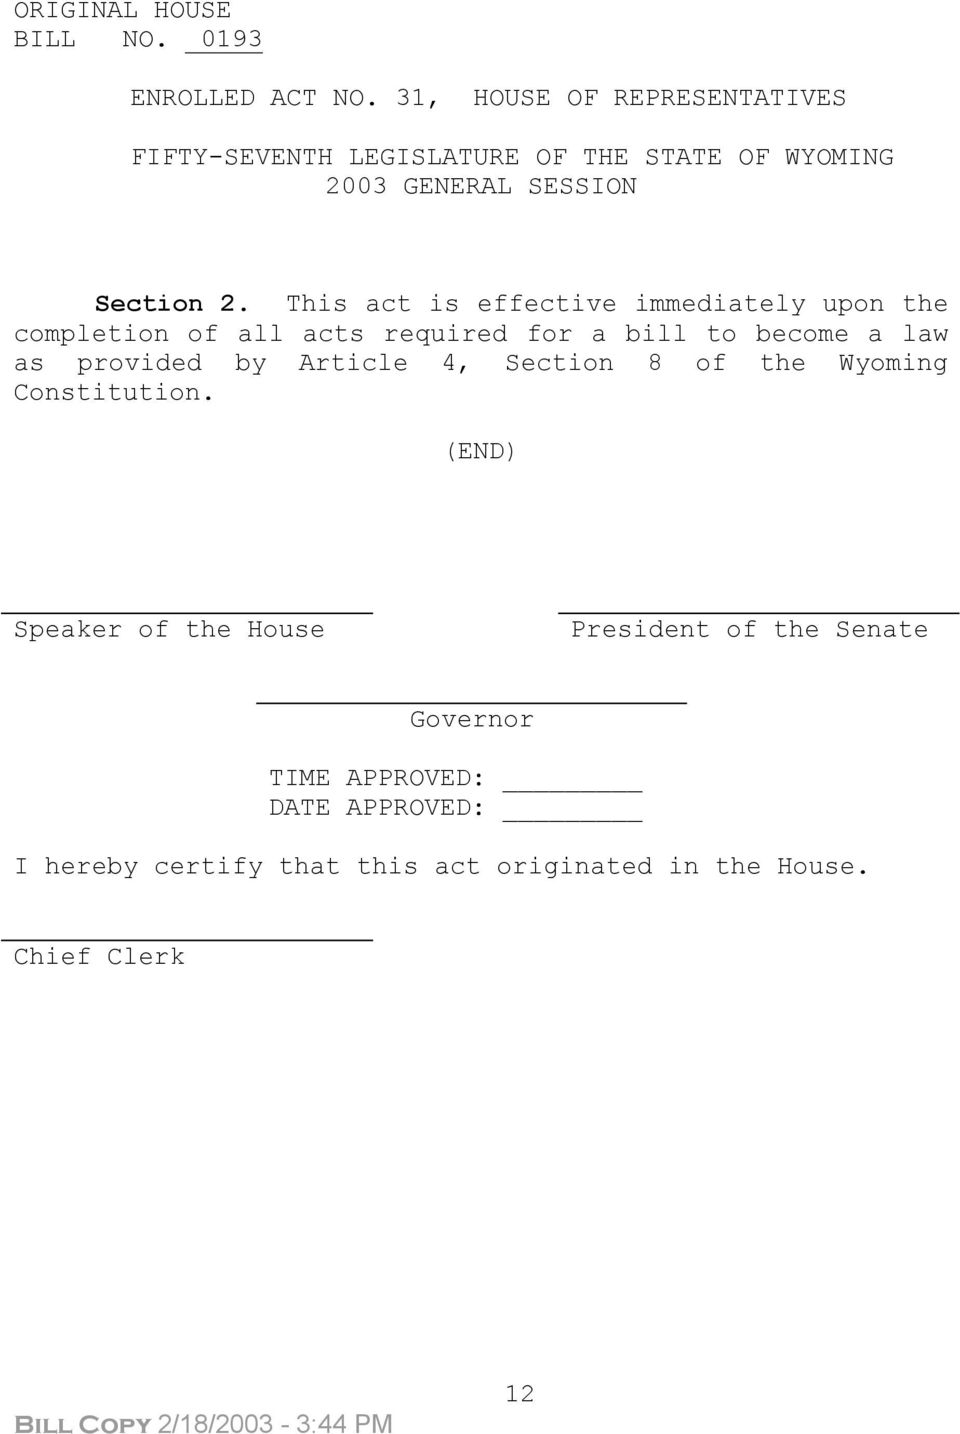 bill to become a law as provided by Article 4, Section 8 of the Wyoming Constitution.